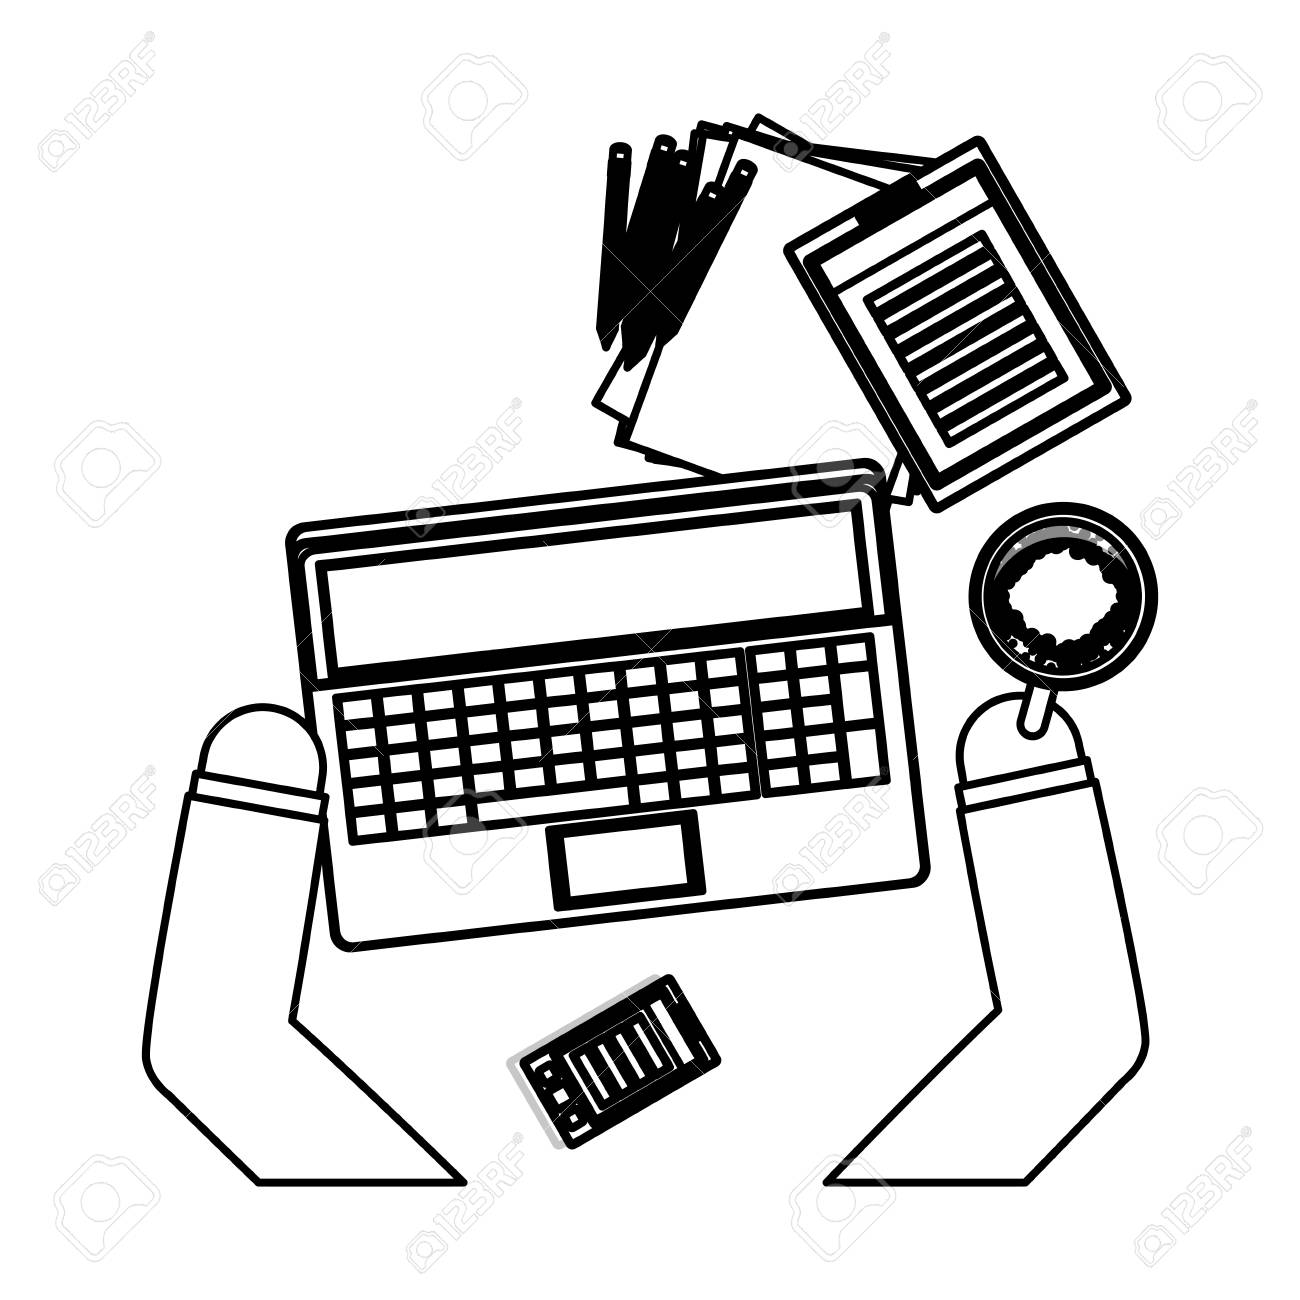 work and technology concept icon vector illustration graphic Network Equipment Icons vector work and technology concept icon vector illustration graphic design